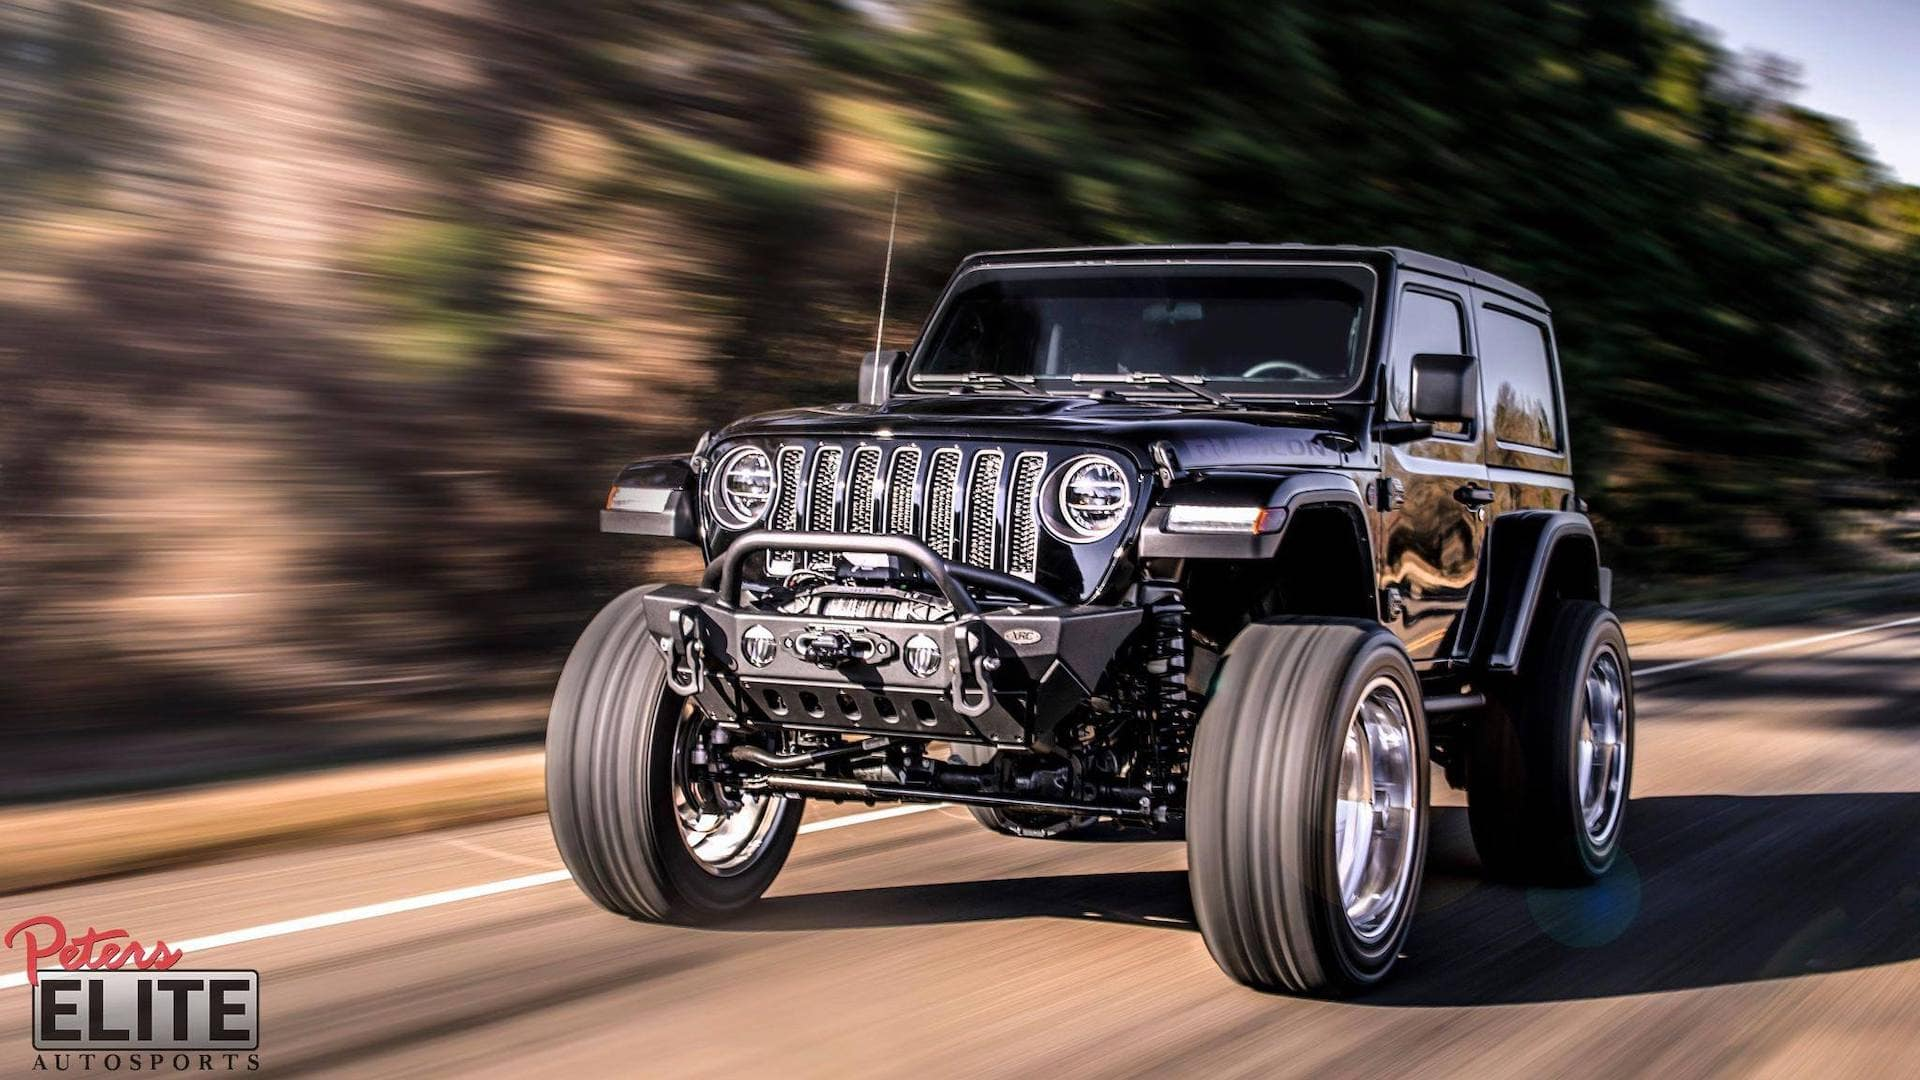 JEEP RUBICON11